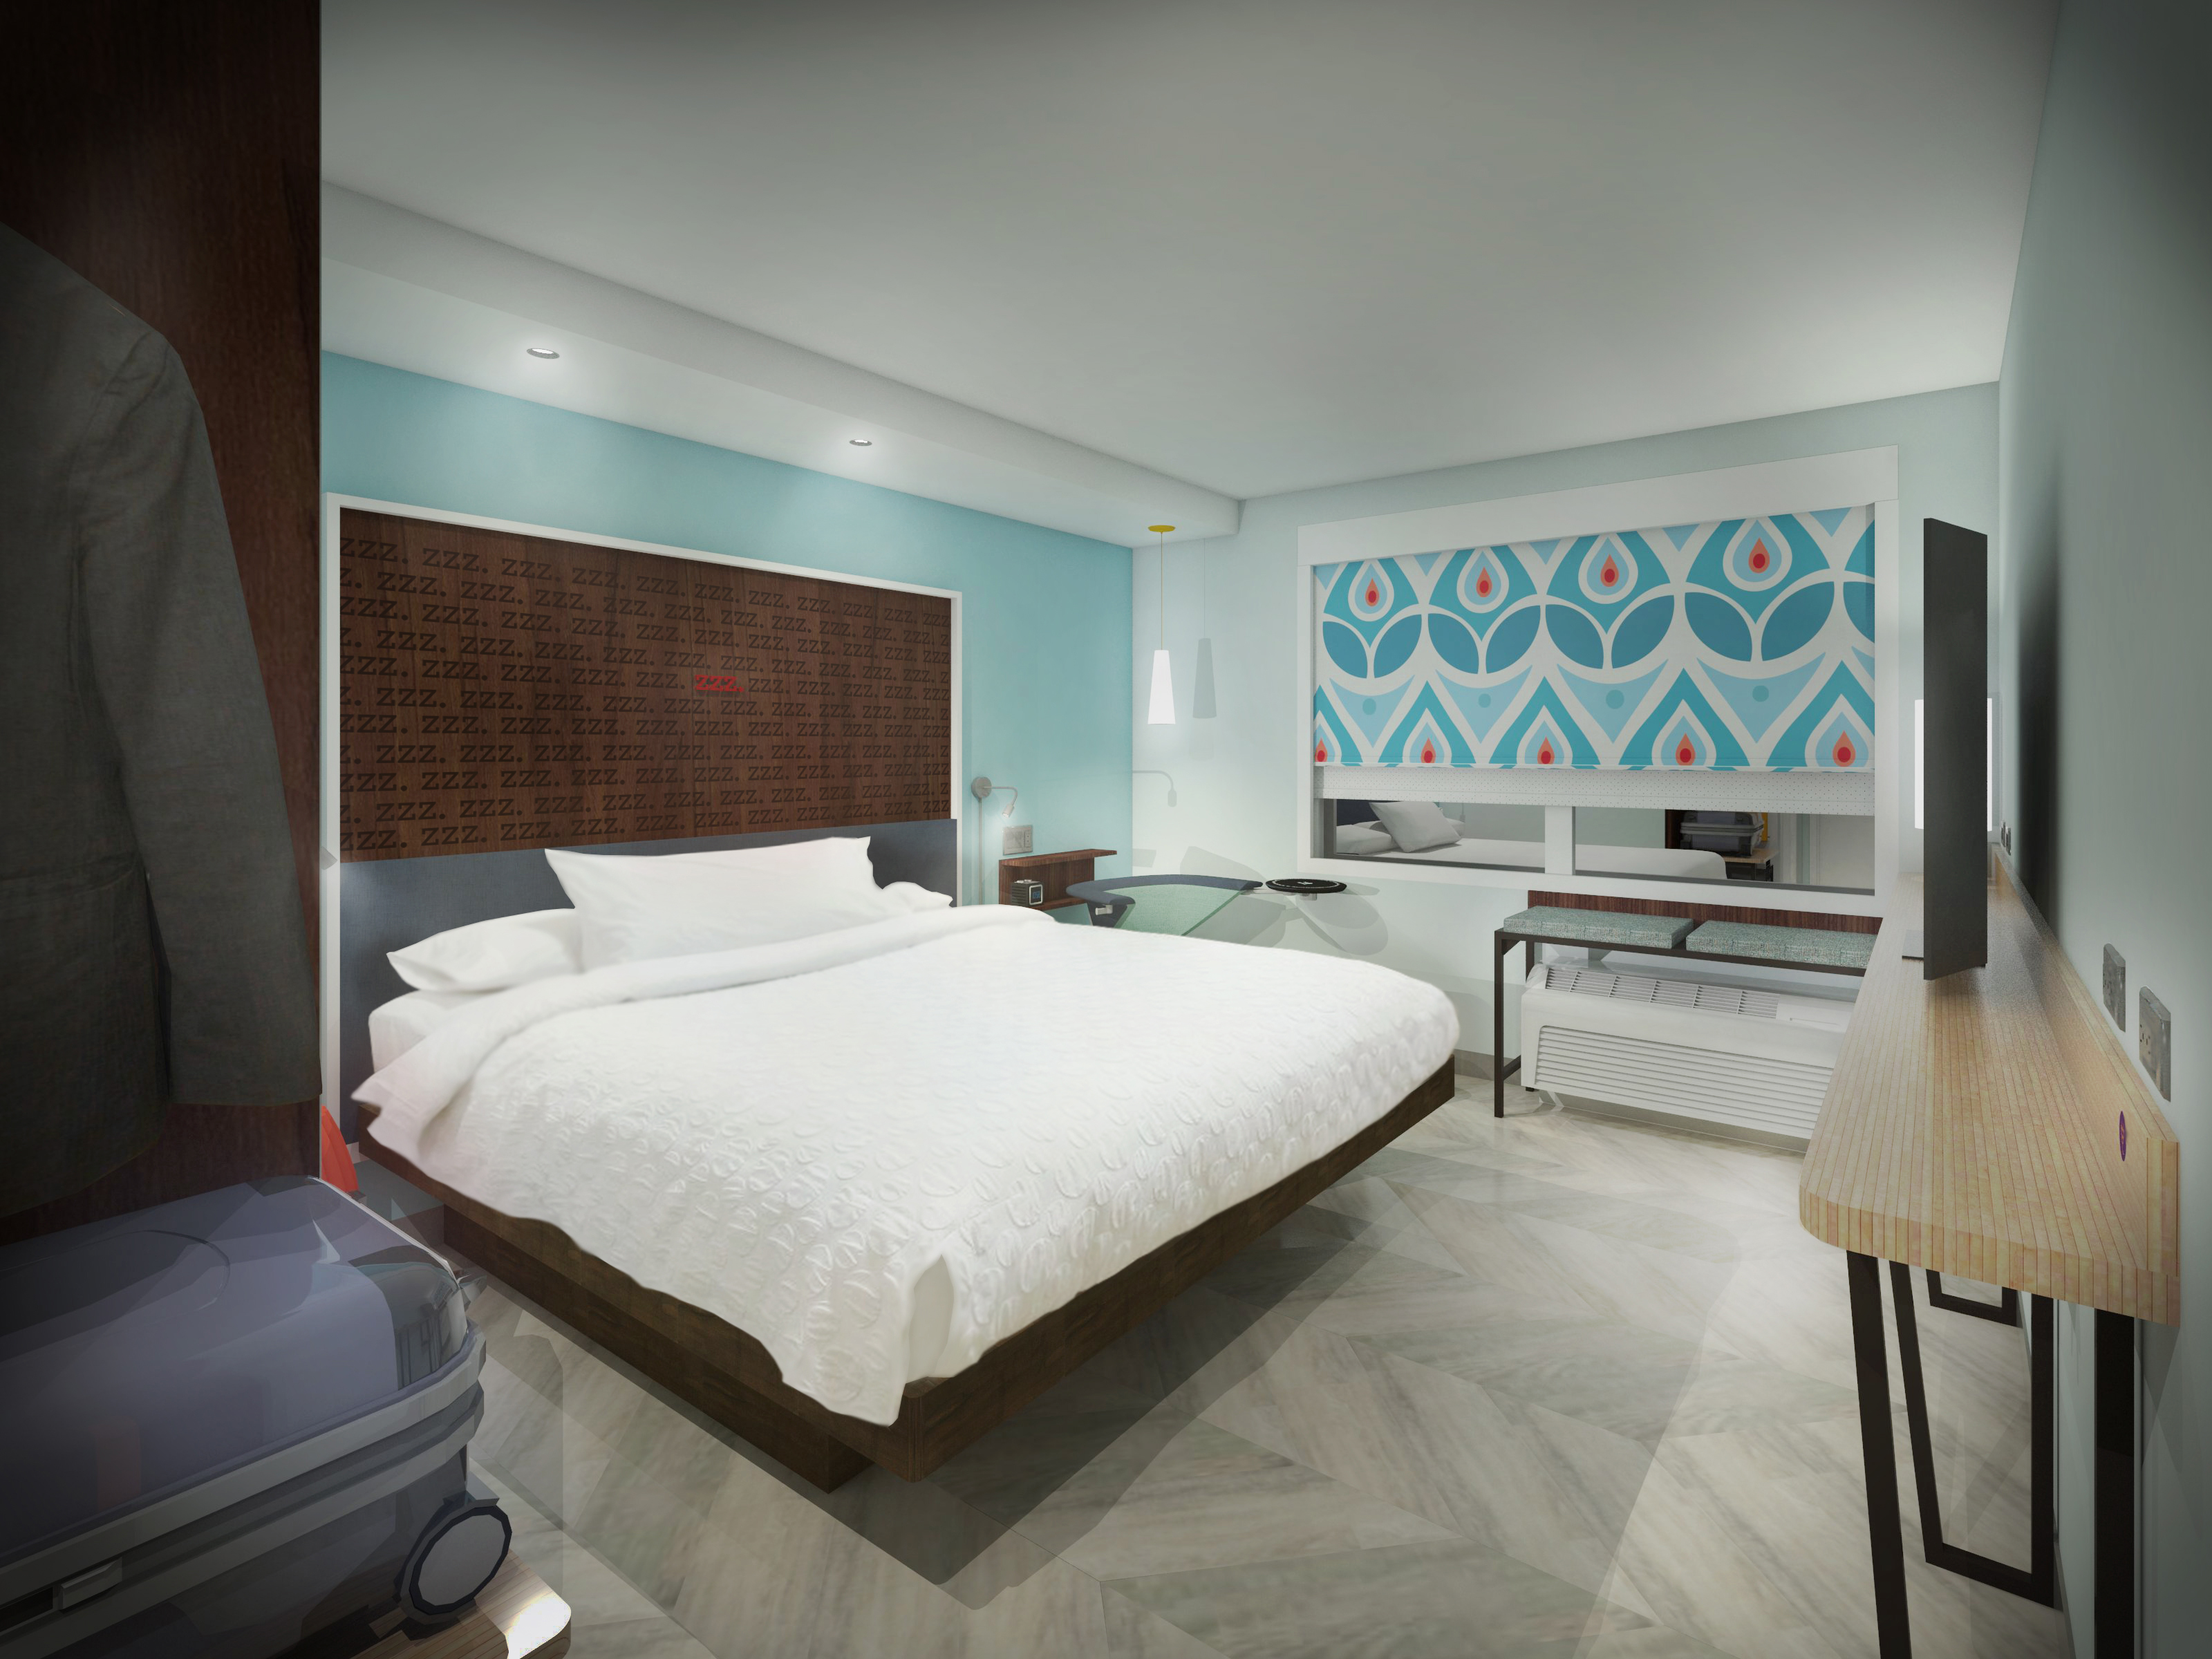 Hilton Launches New Budget Hotel Chain Aimed At Young Guests